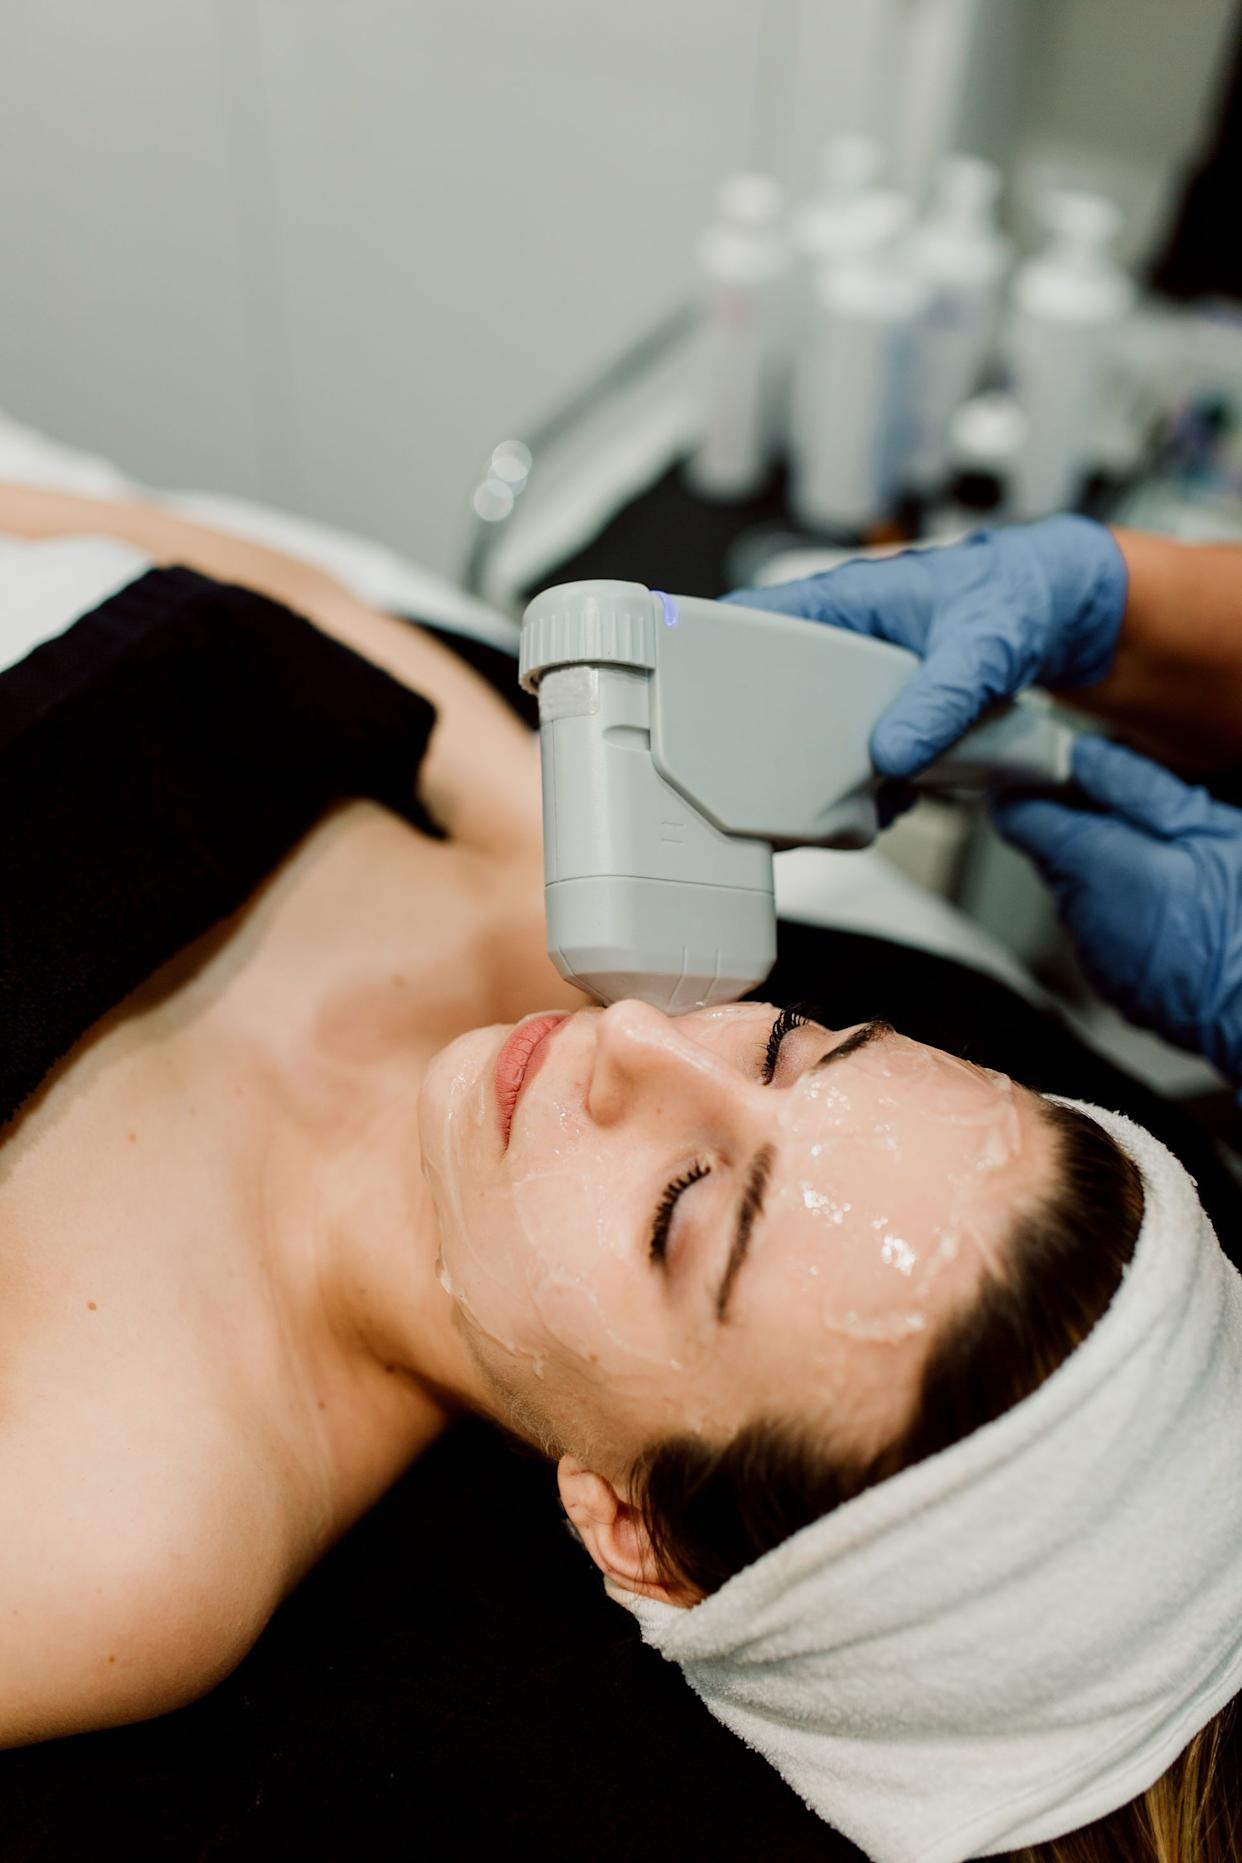 """Q: What sort of downtime is there with a pulsed dye laser treatment like VBeam? Cabin: """"Typically, patients have six to eight hours of redness, swelling, mild pain (like a sunburn). In a minority of patients, these symptoms can last up to three days. A small number of patients will notice light darkening or bruising that typically persists for three to 10days. The nice thing about VBeam is that makeup and lotions can be used immediately aftertreatment to reduce or eliminate any visible signs of treatment and to soothe the skin."""""""